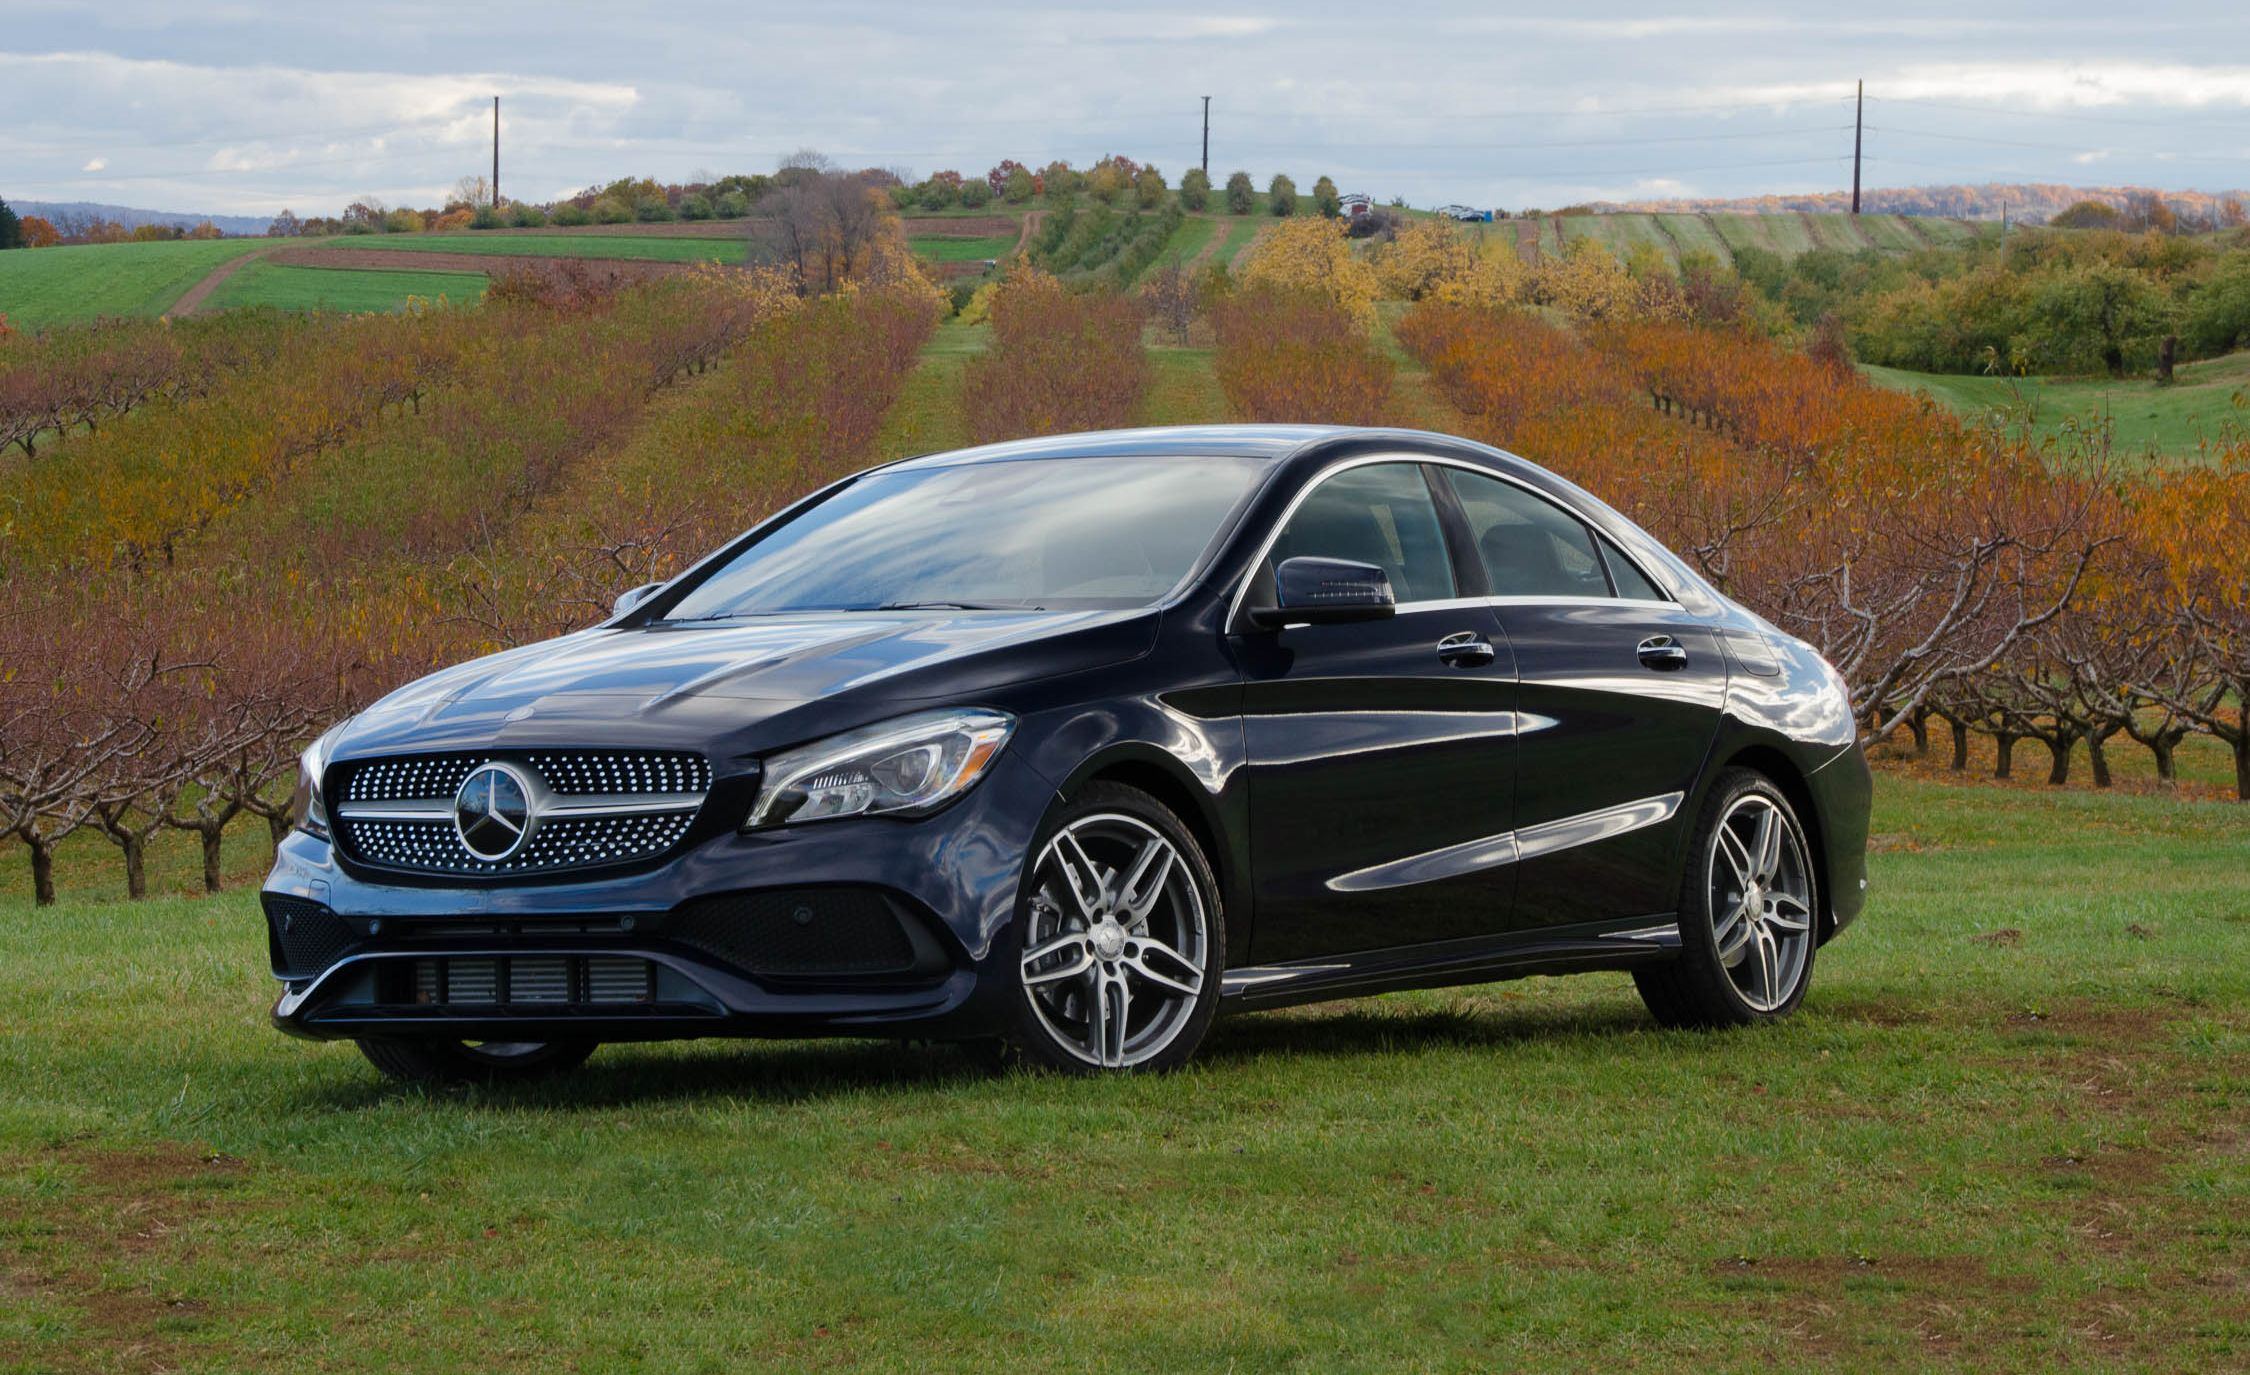 mercedes benz cla class reviews mercedes benz cla class price photos and specs car and driver. Black Bedroom Furniture Sets. Home Design Ideas